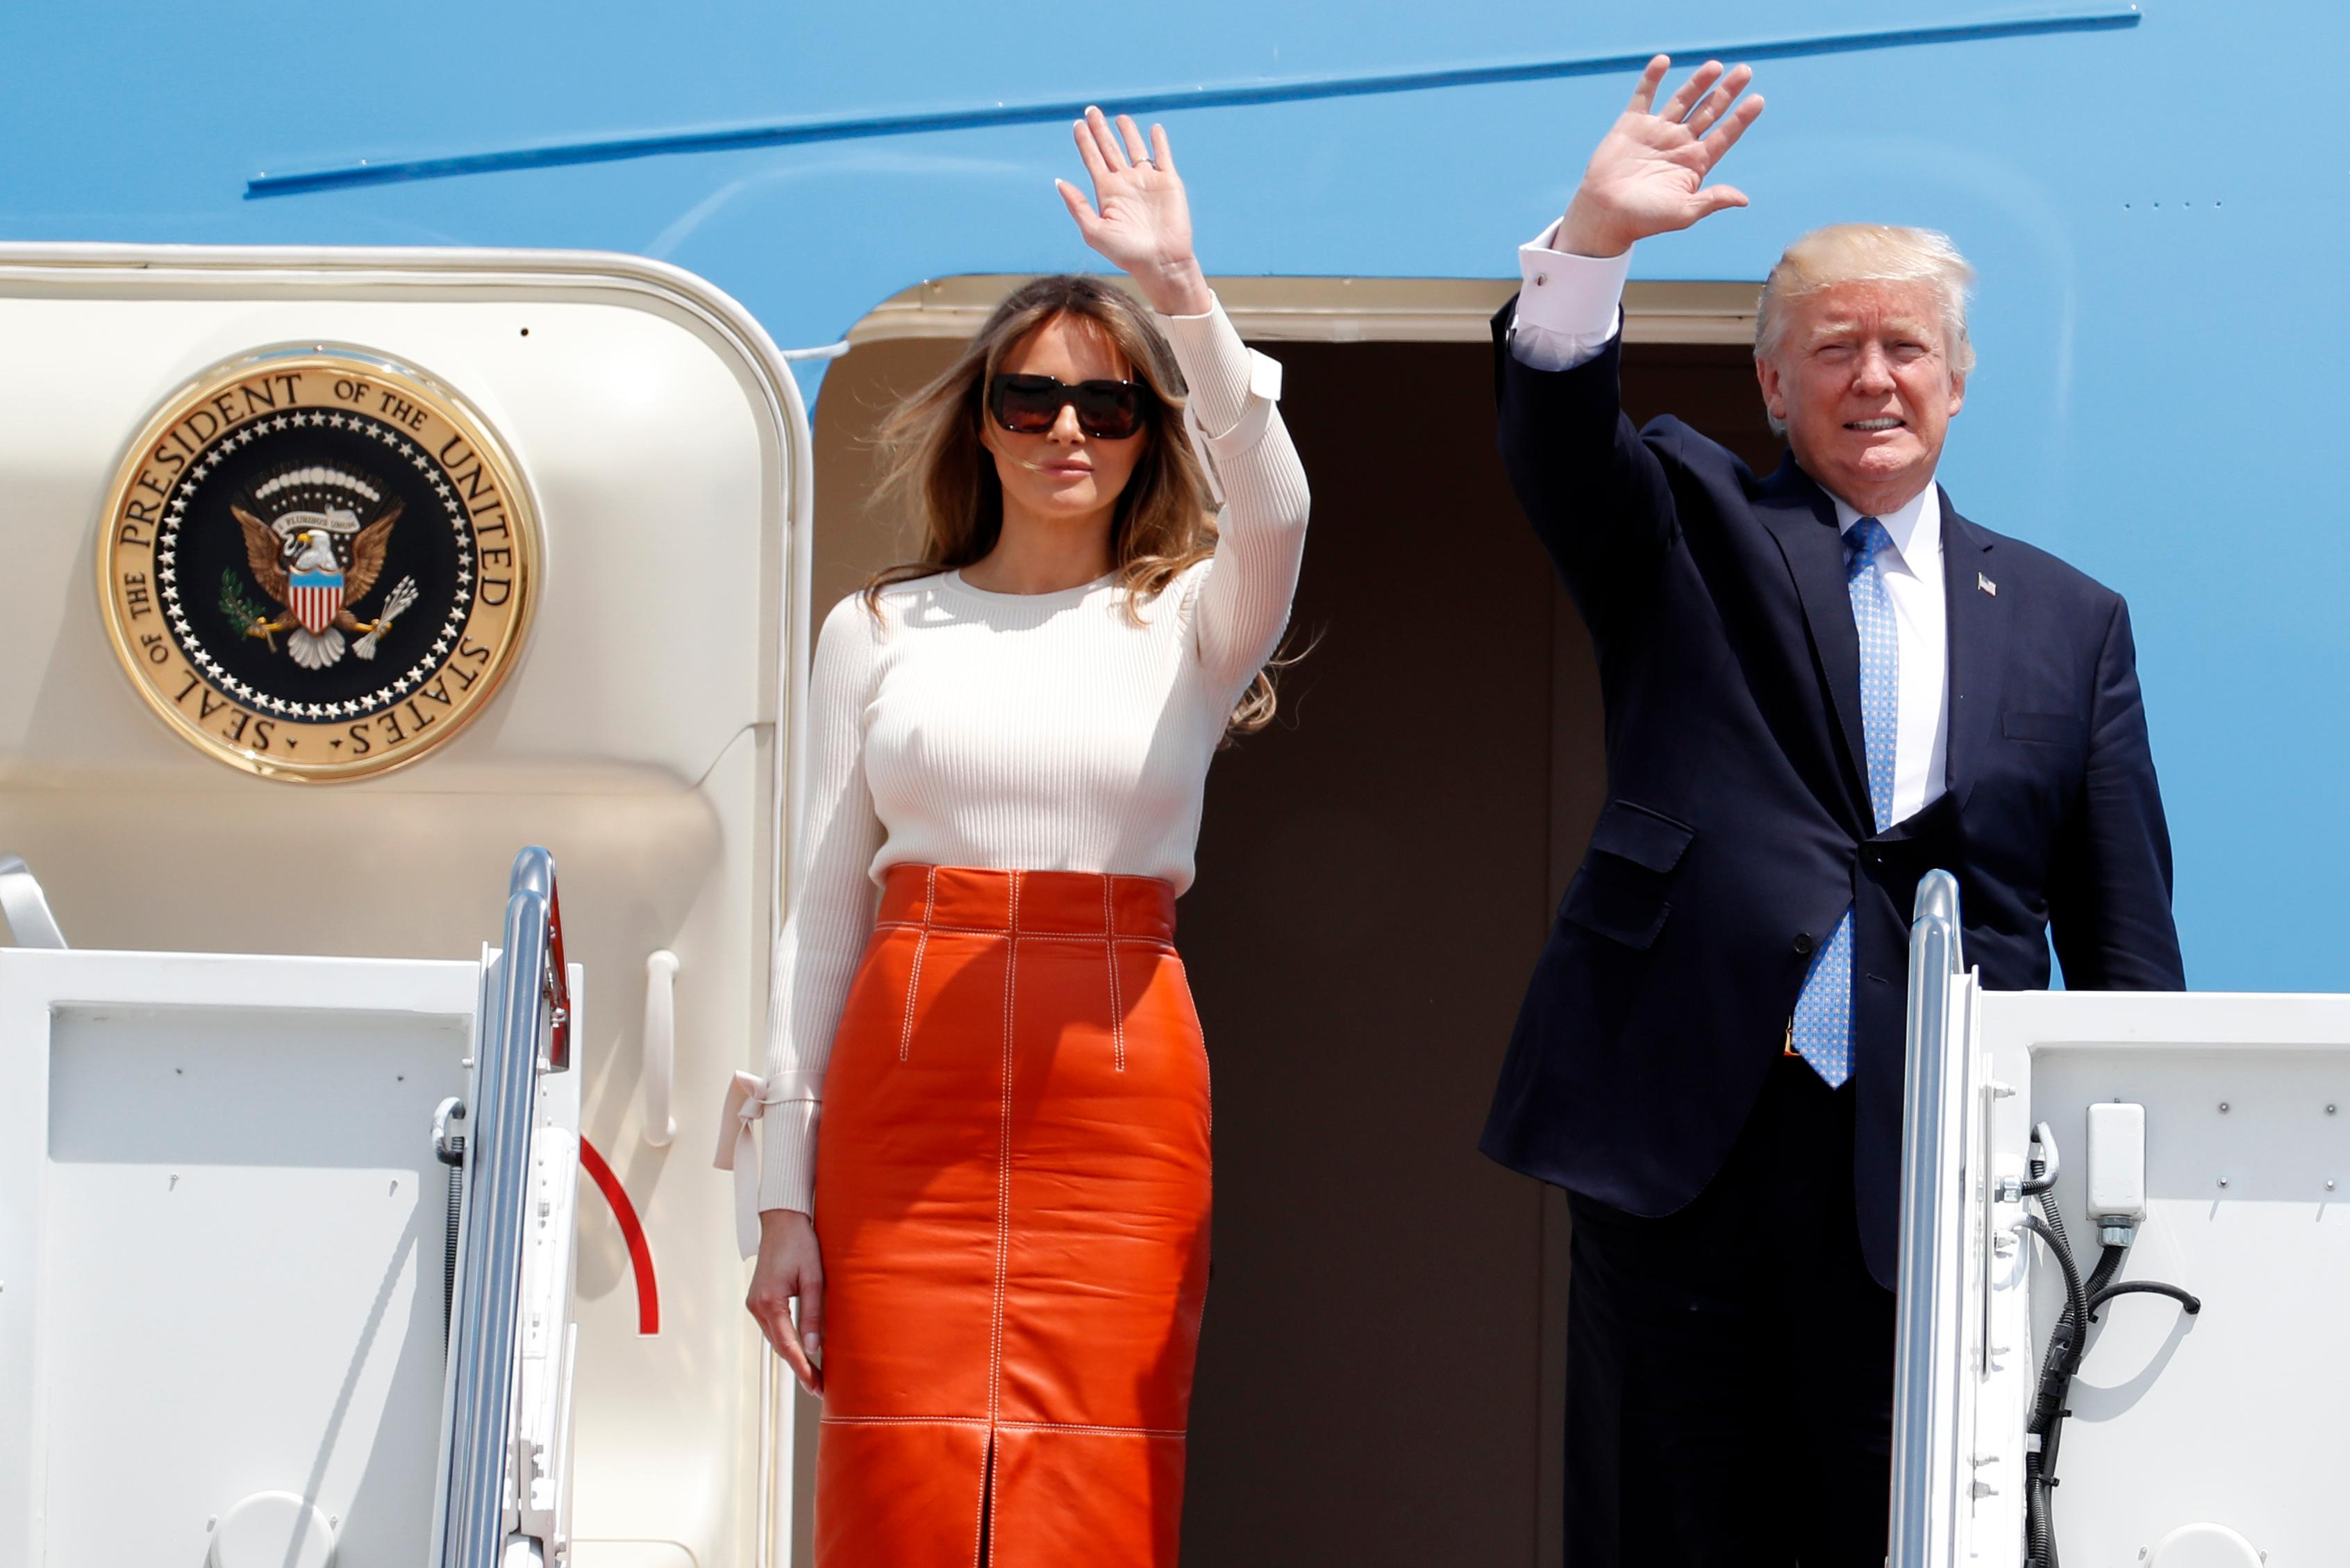 President Donald Trump and first lady Melania Trump, wave as they board Air Force One at Andrews Air Force Base, Md., Friday, May 19, 2017, prior to his departure on his first overseas trip. (AP Photo/Alex Brandon)